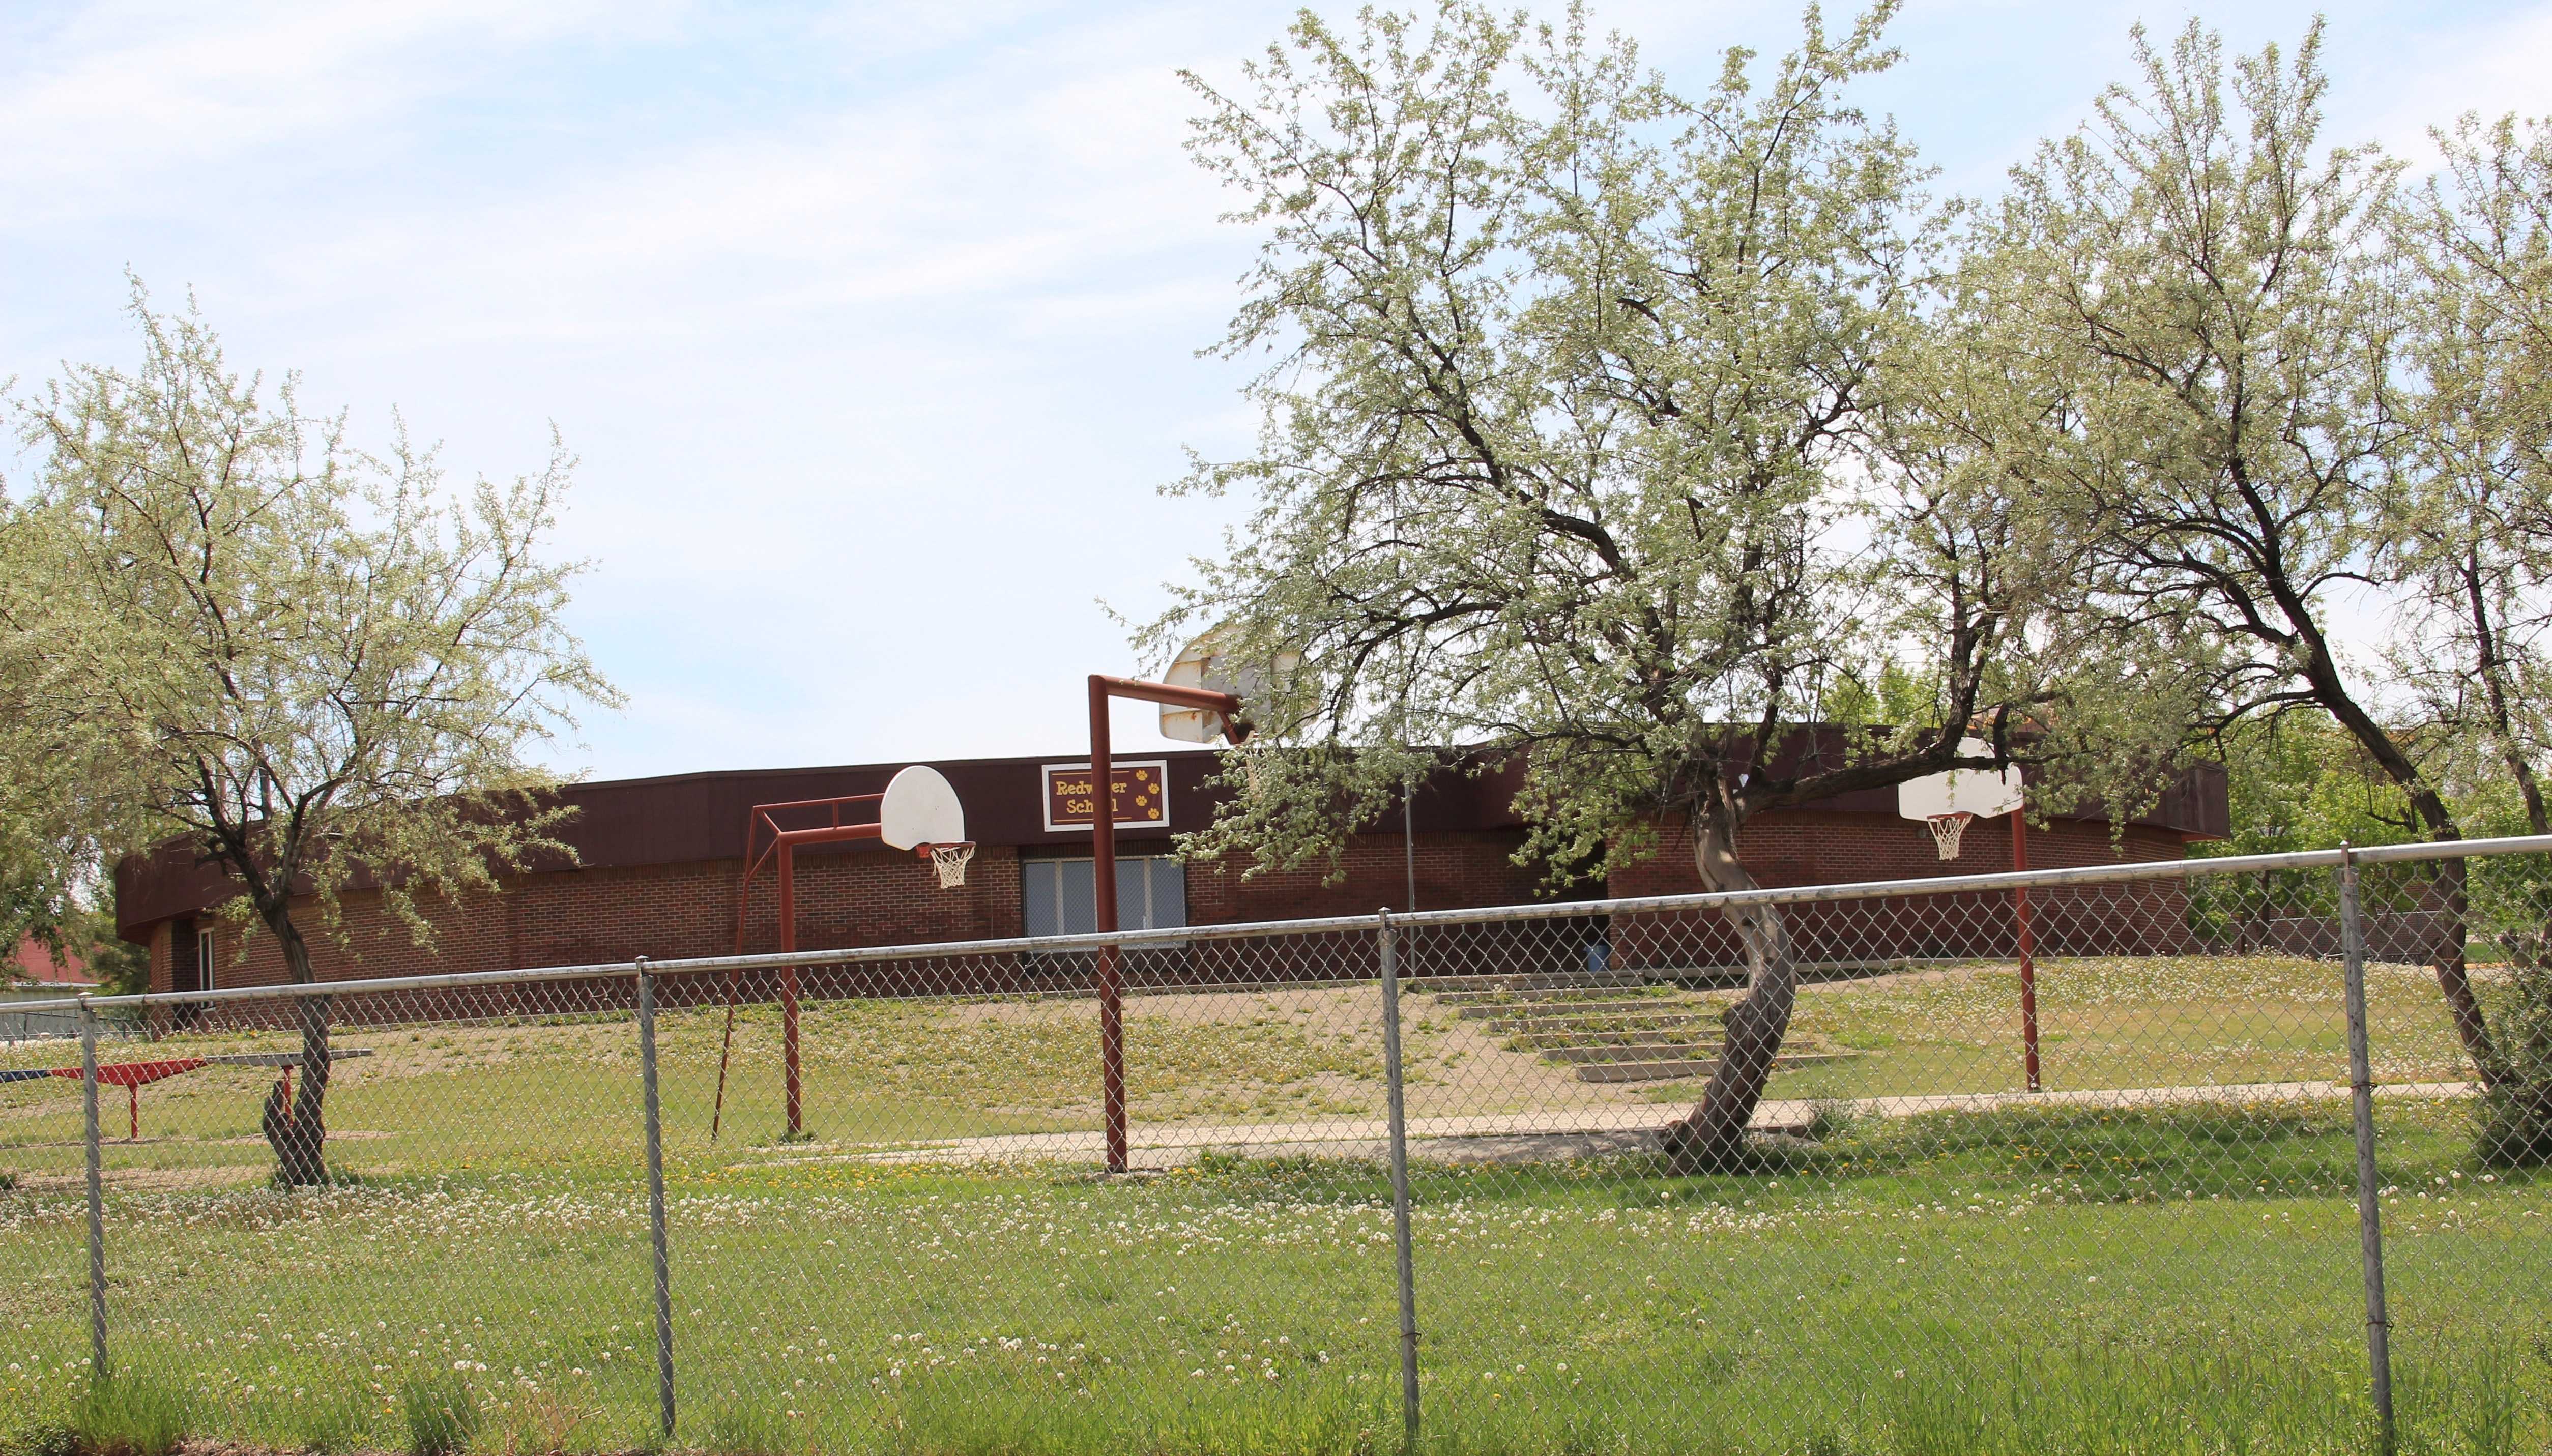 McCone Co Circle school 1